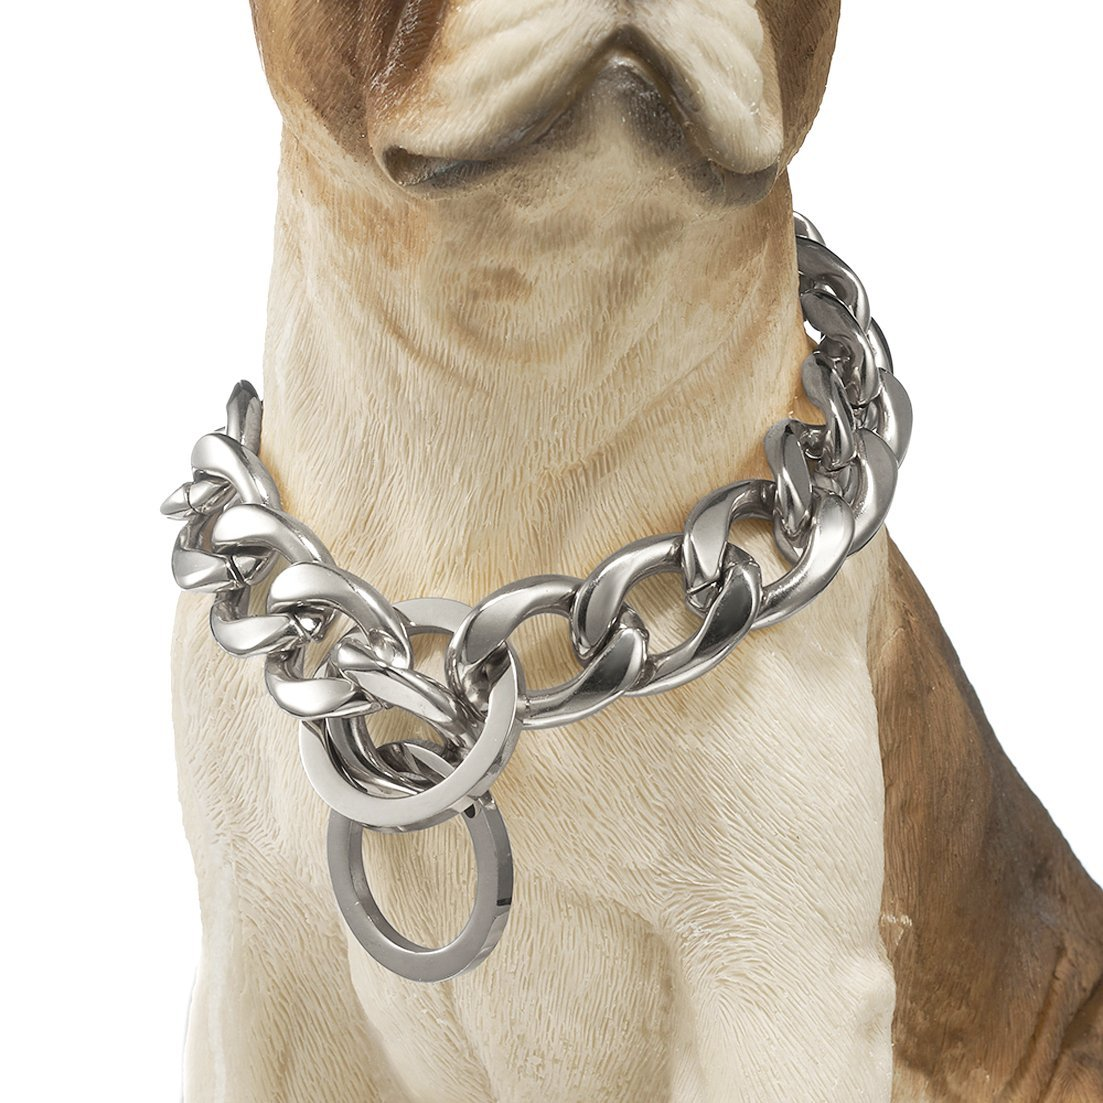 GZMZC 13/15/19mm Strong Silver Tone 316L Stainless Steel NK Chain Link Dog Pet Choker Collar Necklace 12-36inch(26inches,19mm)